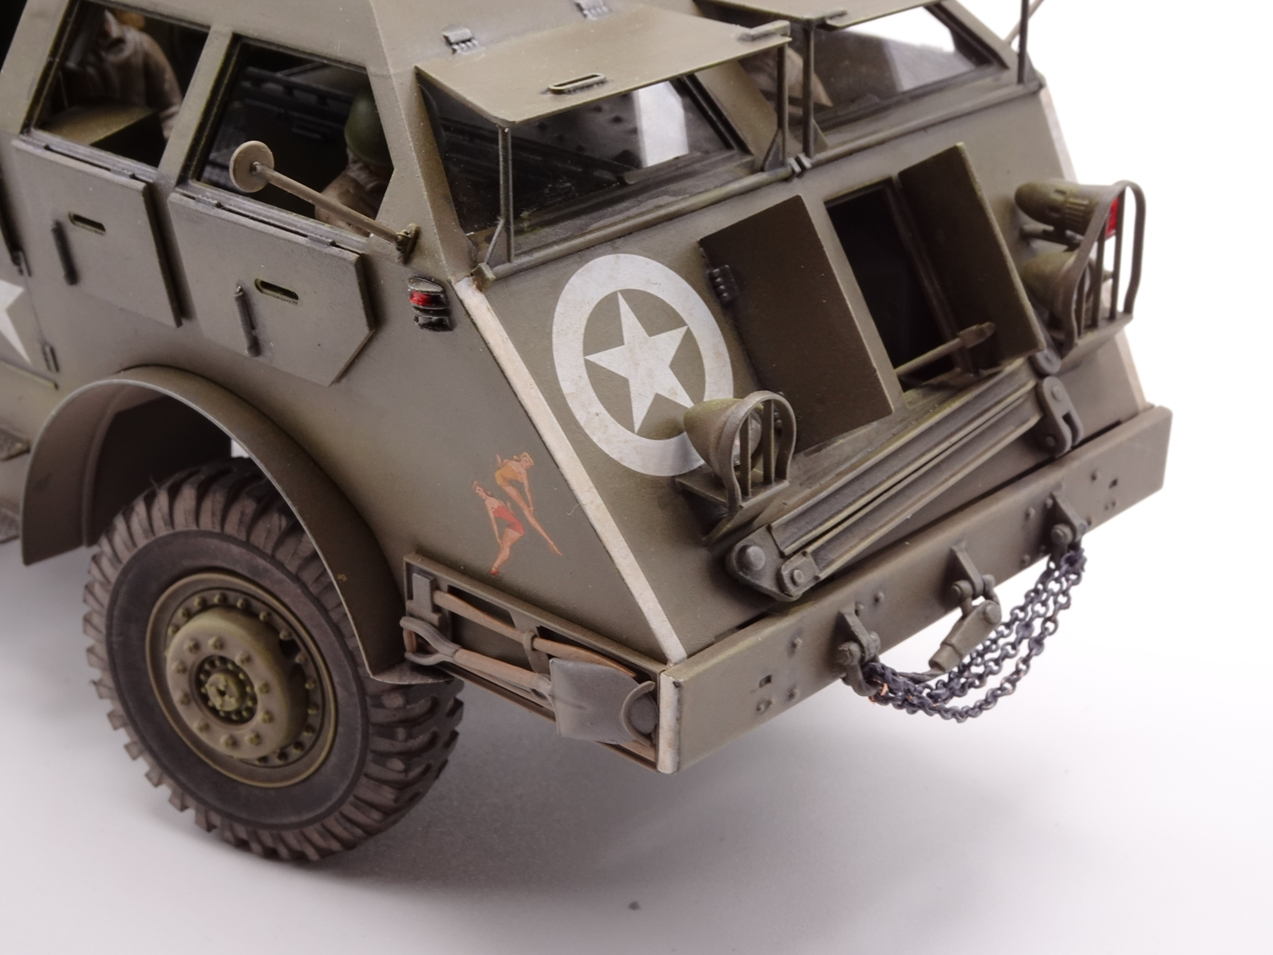 [Tamiya 1/35] M26 Armored tank recovery vehicle réf. 35244 - Page 4 M26-fin-5